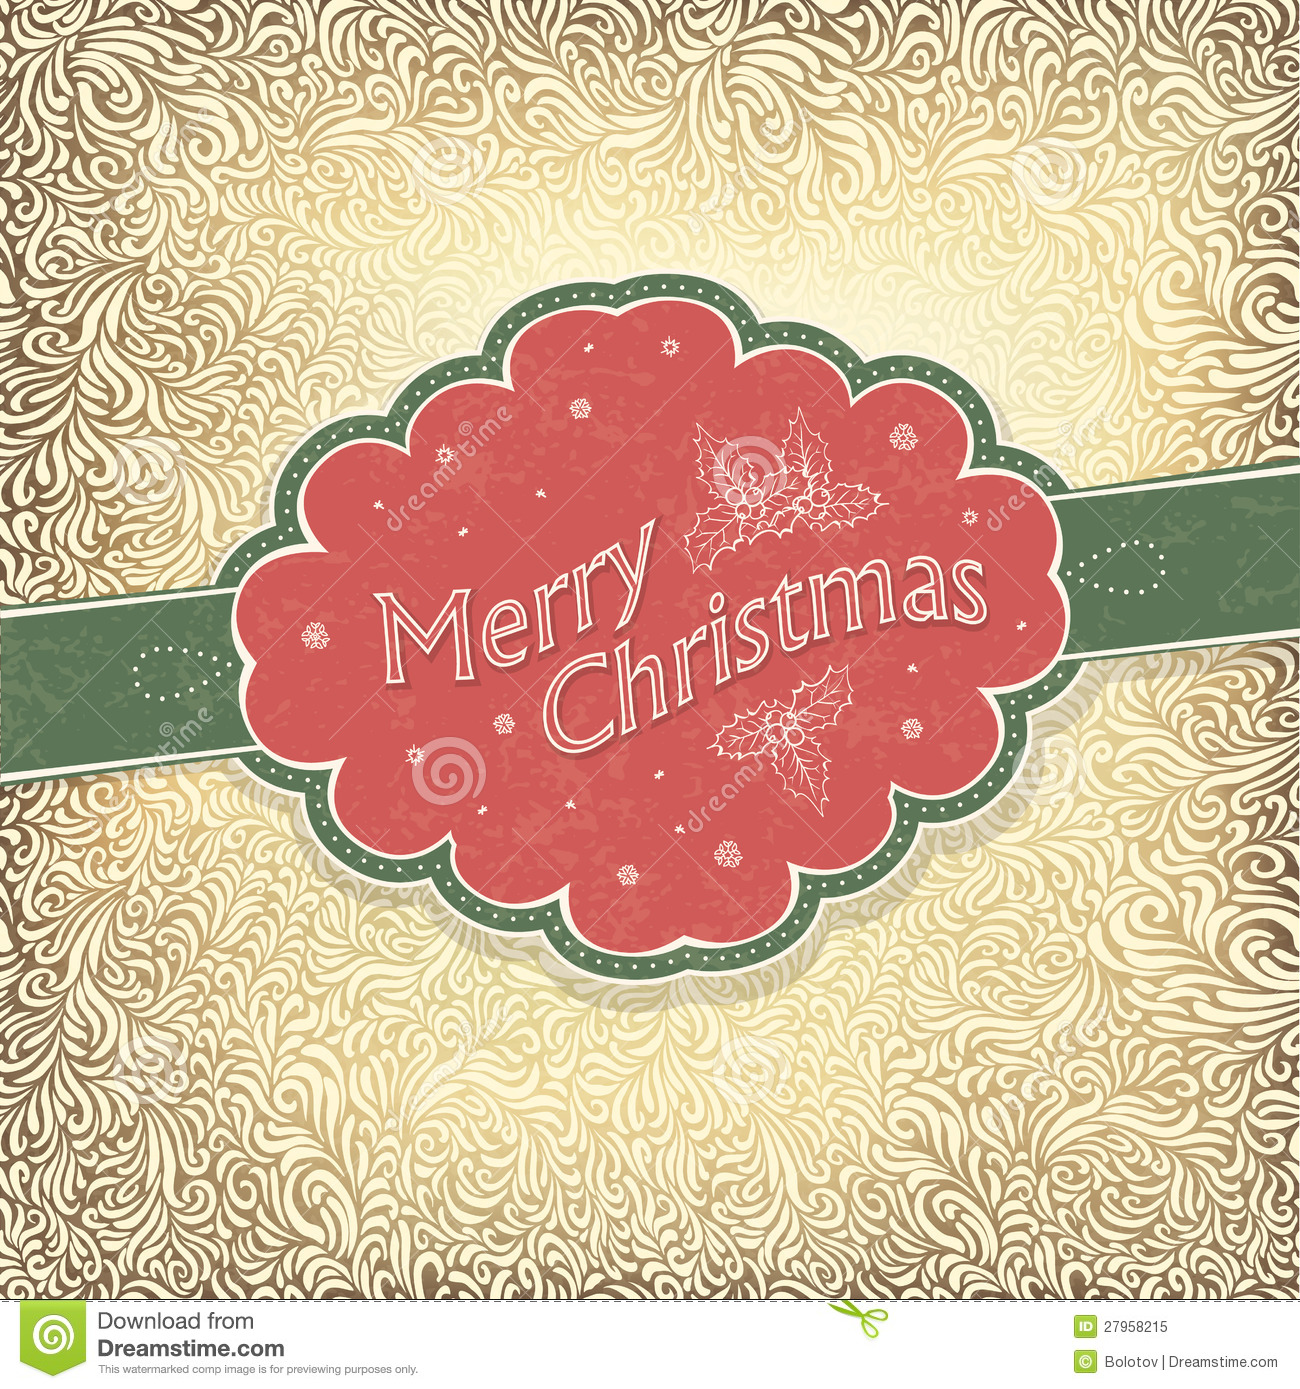 Merry Christmas Vintage Card Stock Vector  Image 27958215